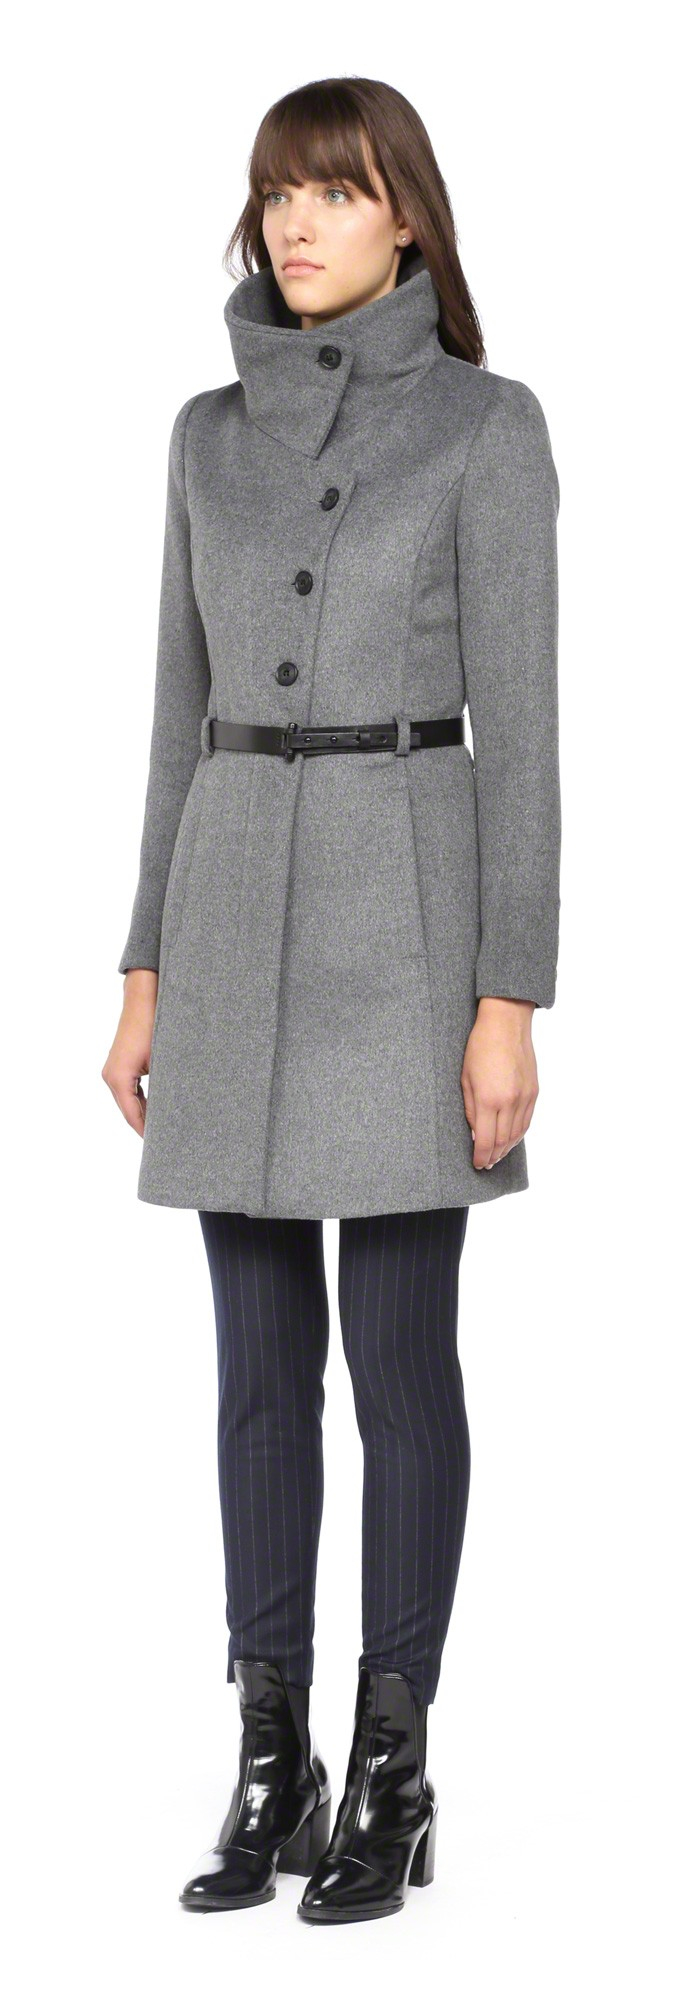 Soia & kyo Autry-F4 Classic Grey Wool Coat With Belt in Gray | Lyst